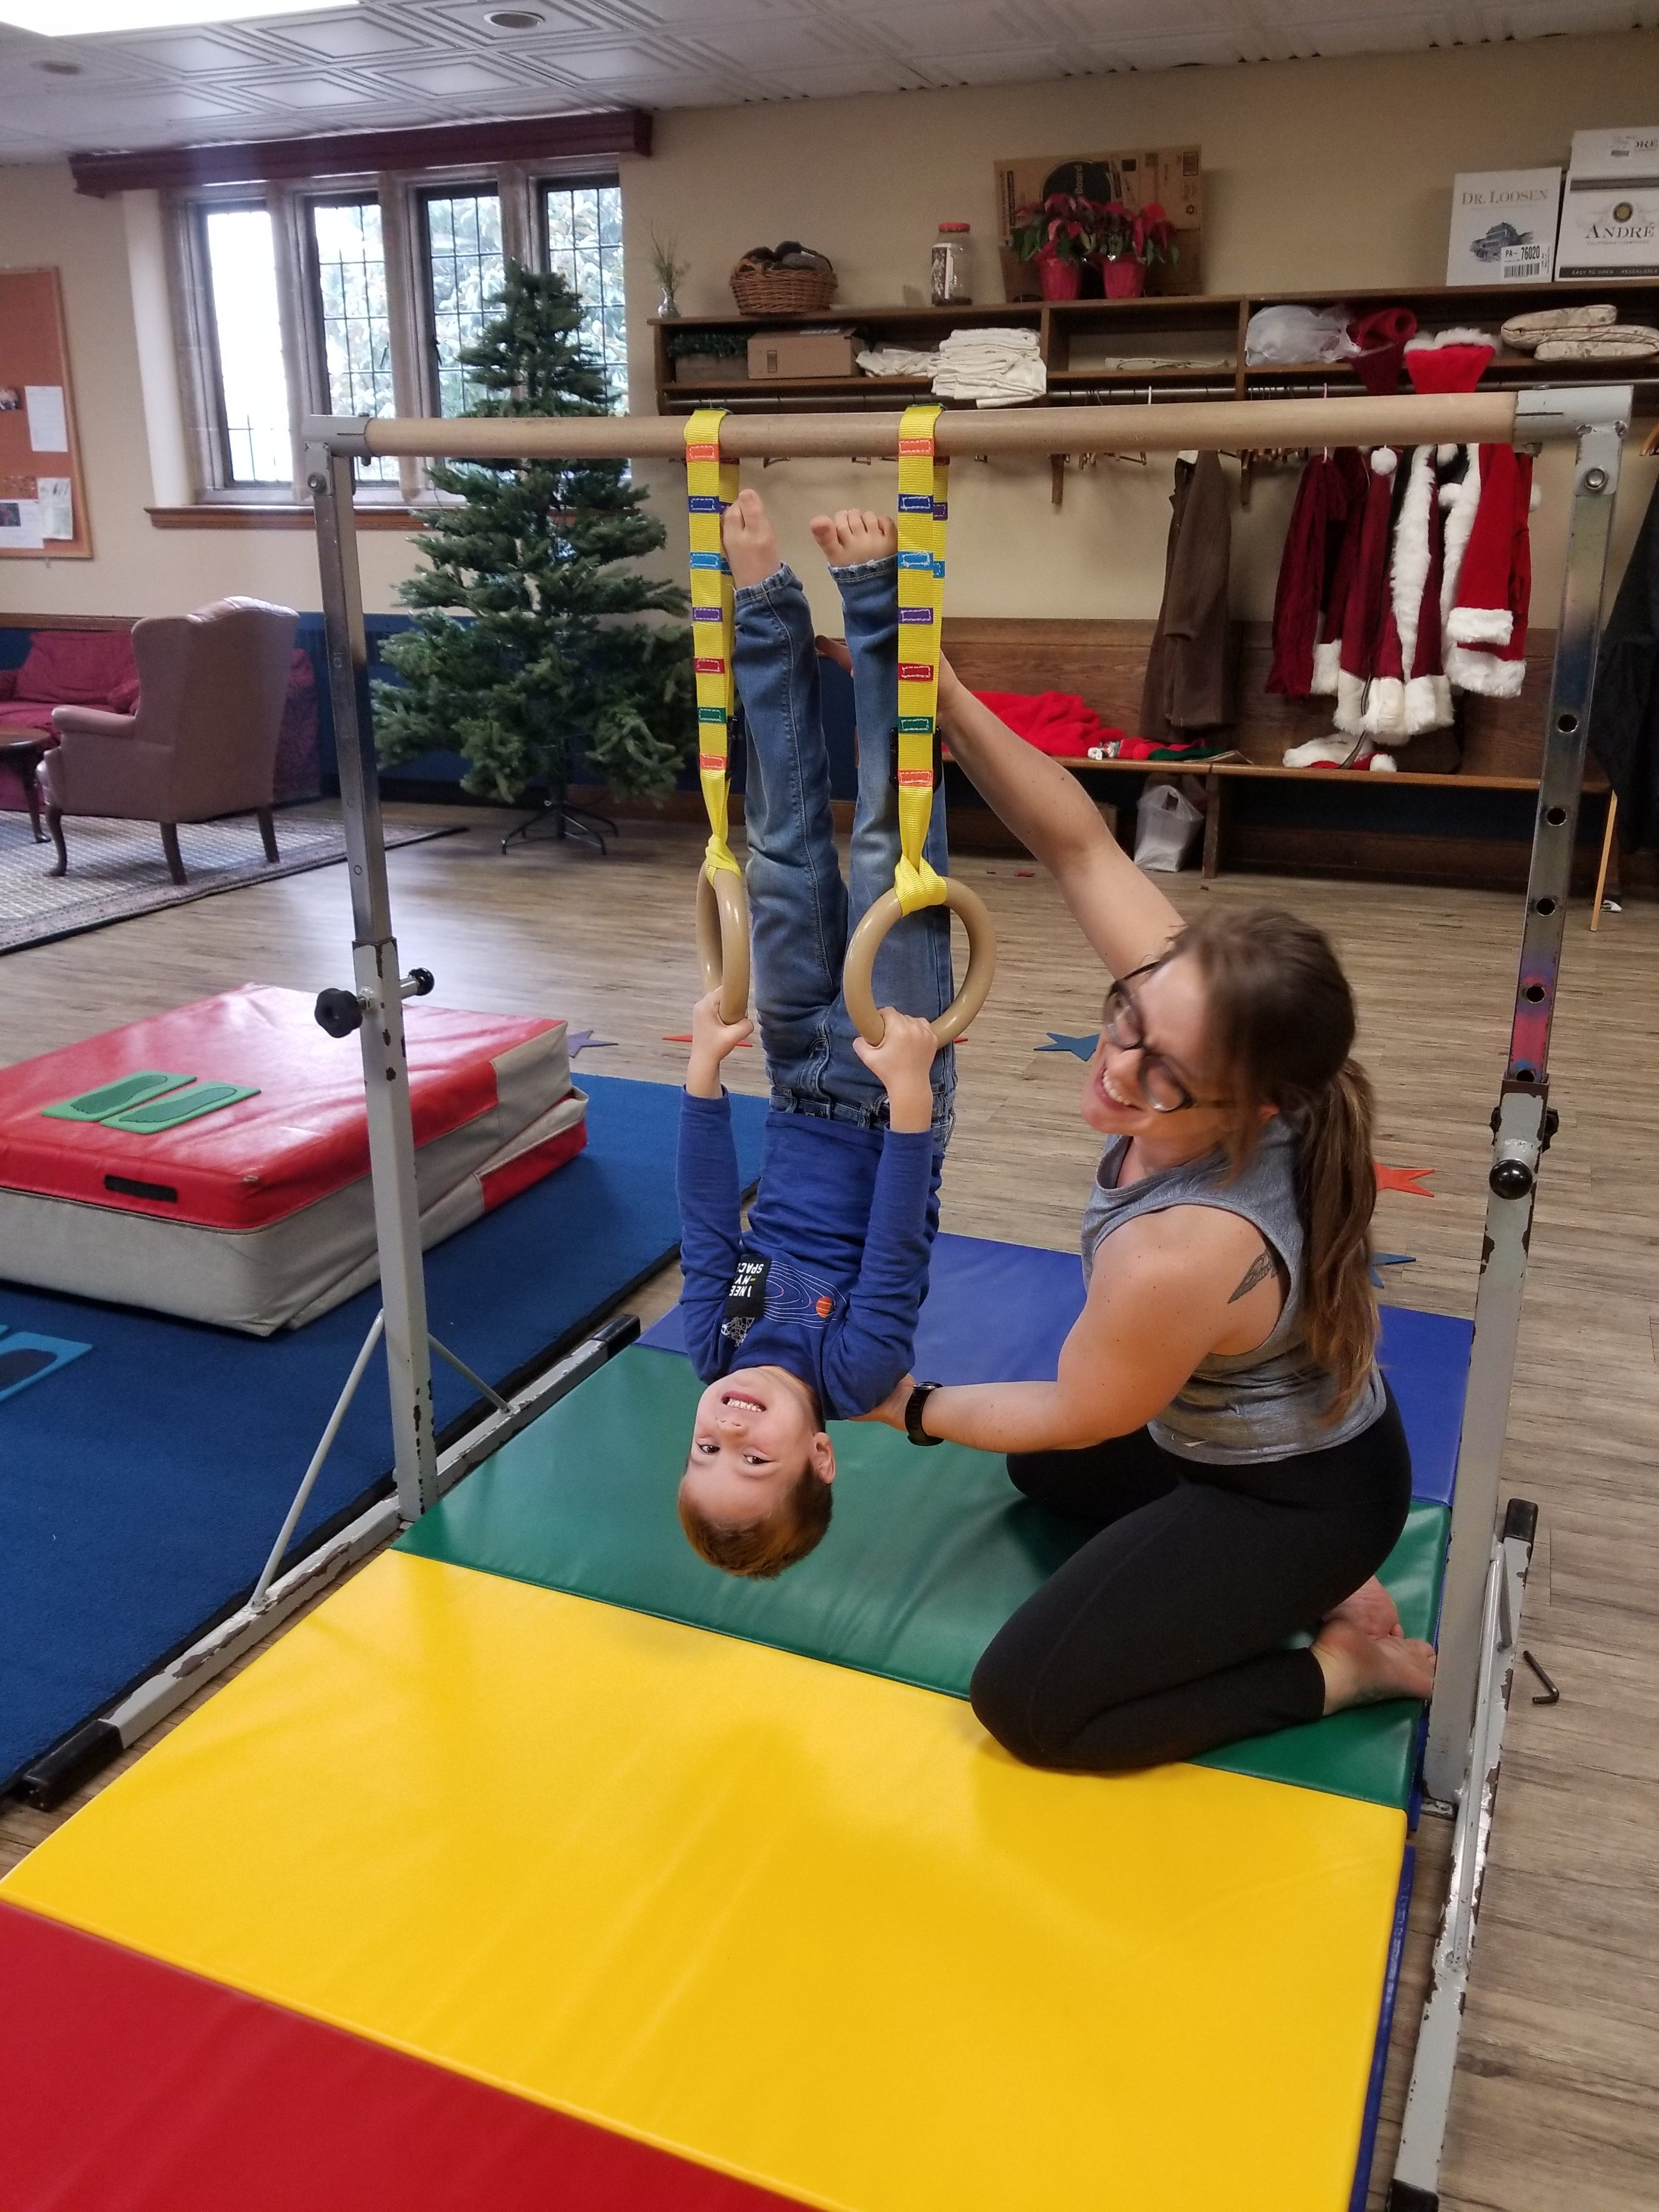 Instructor Katie helping a child with gymnastic rings